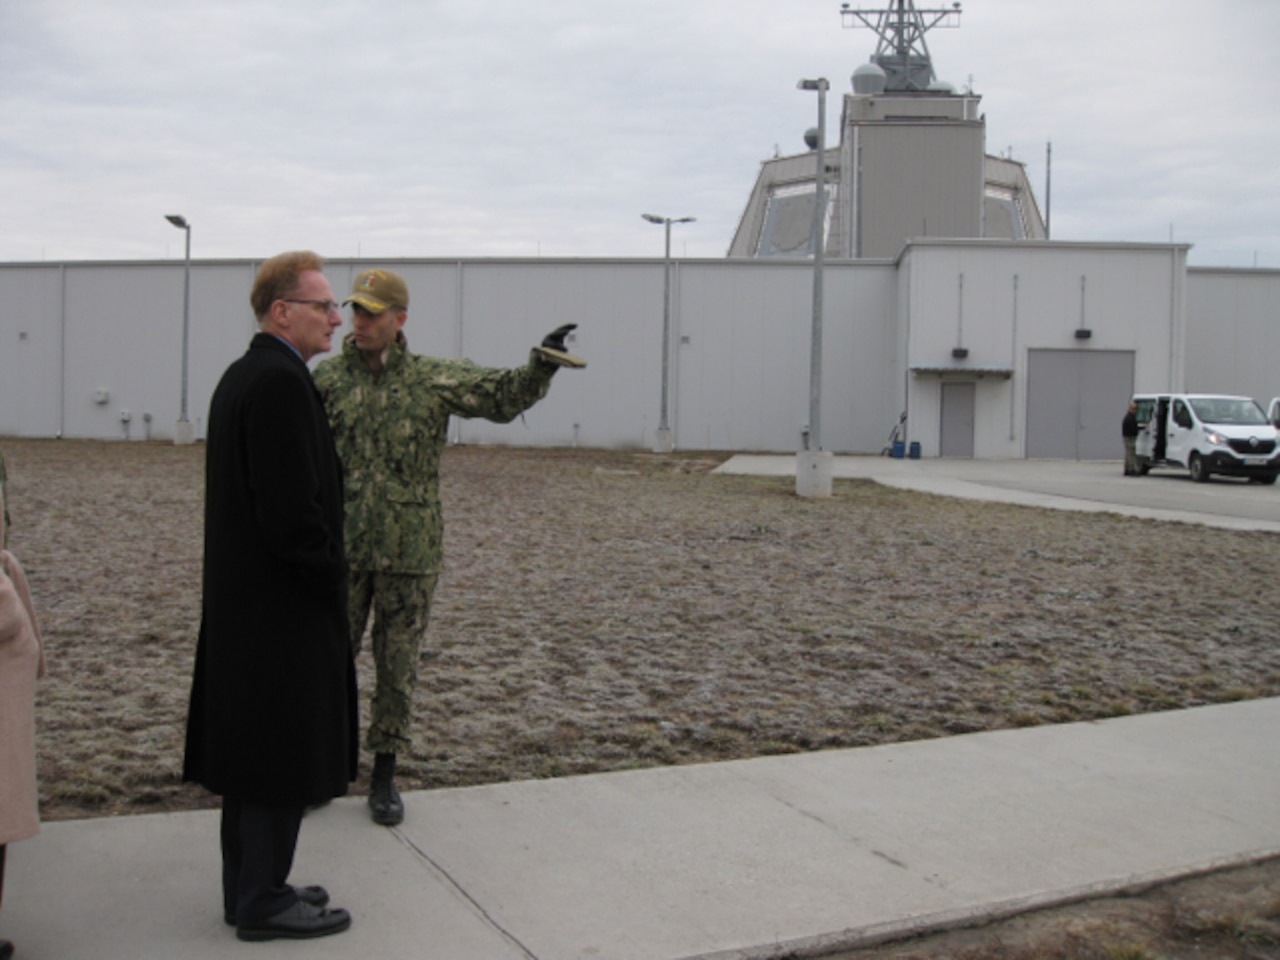 Navy Cmdr. Axel Steiner, right, commanding officer of U.S. Aegis Ashore Missile Defense System, gives Navy Undersecretary Thomas B. Modly a tour system at Naval Support Facility Deveselu, Romania.